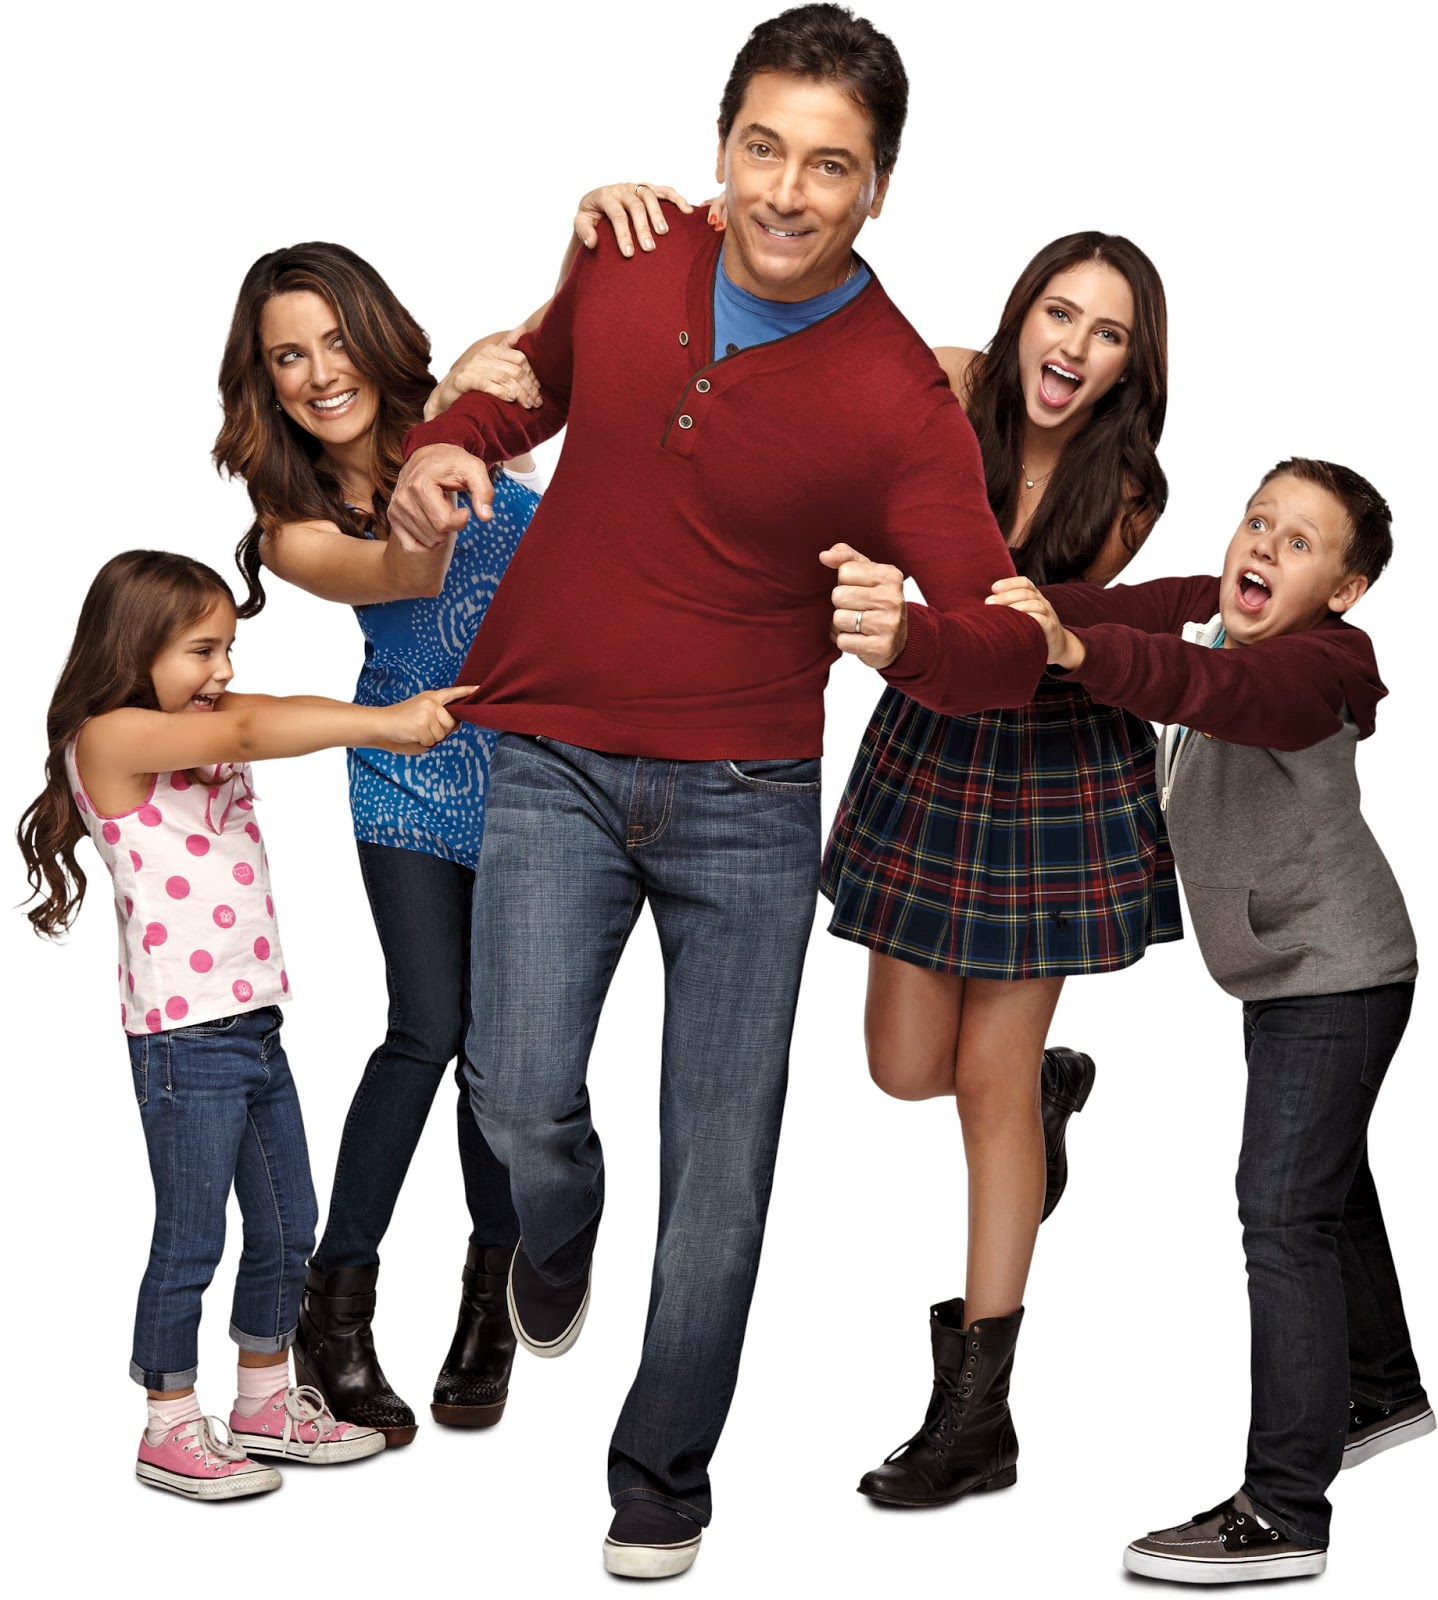 Nickelodeon uk to premiere new episodes of the thundermans and see dad run on monday 1st september 2014